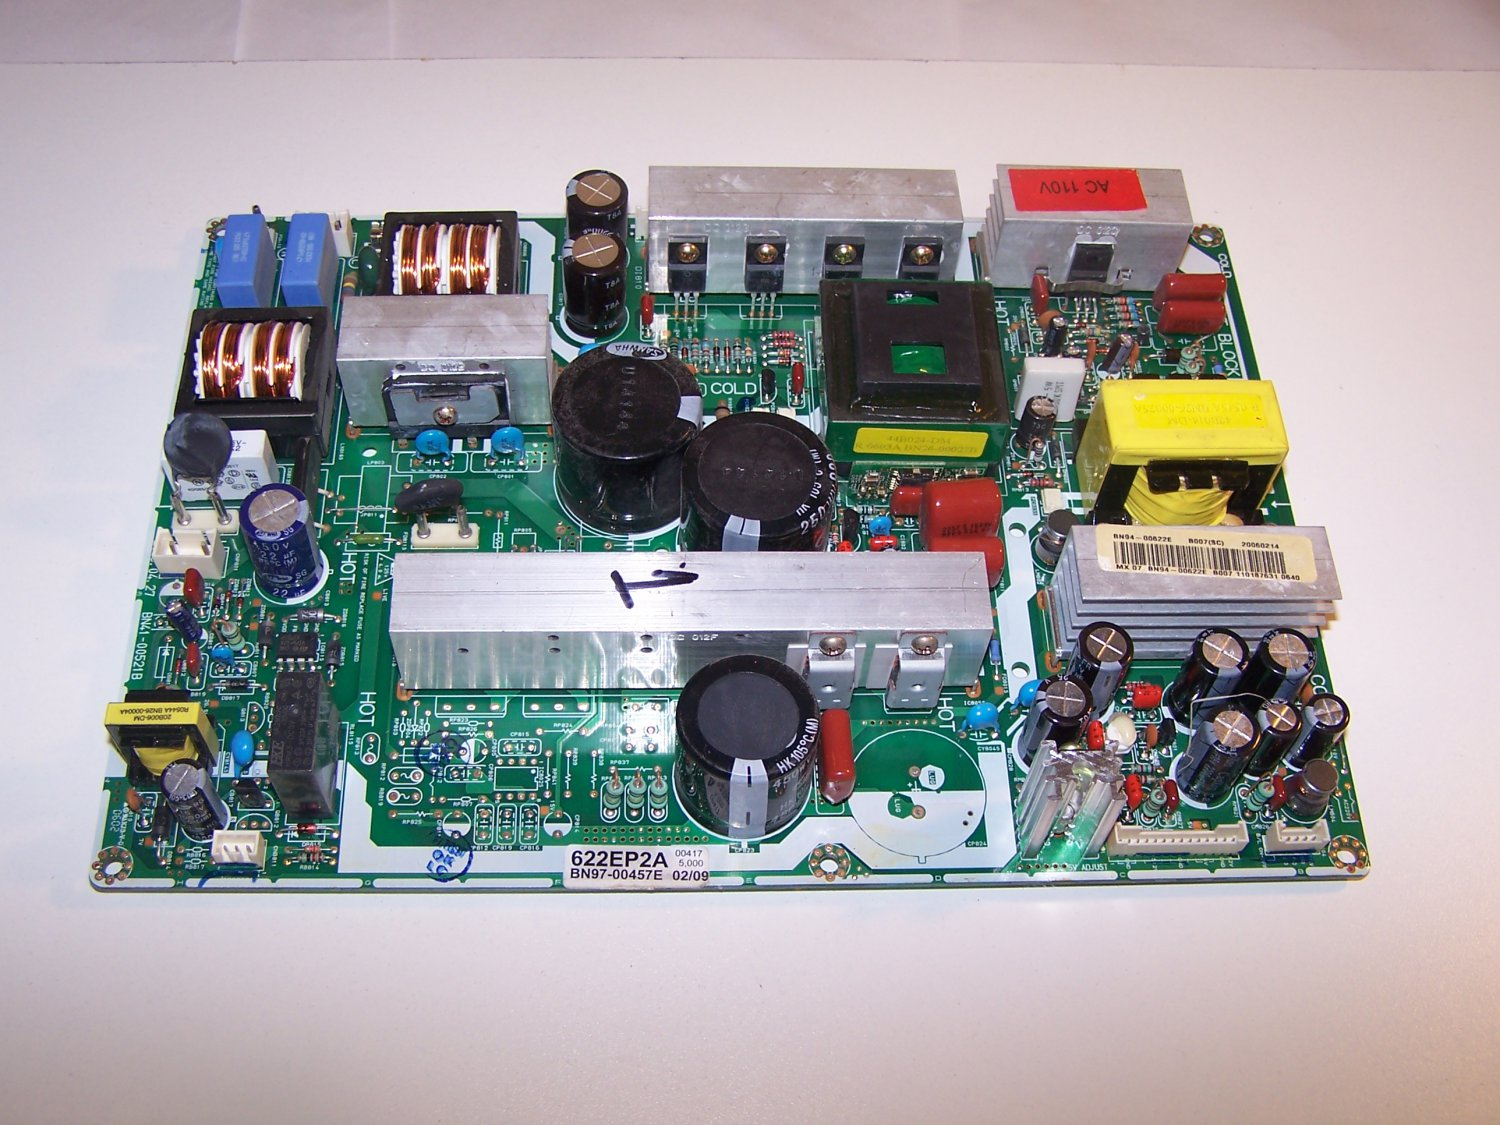 SAMSUNG LN-R408D POWER SUPPLY Model BN97-00457E SOLD OUT